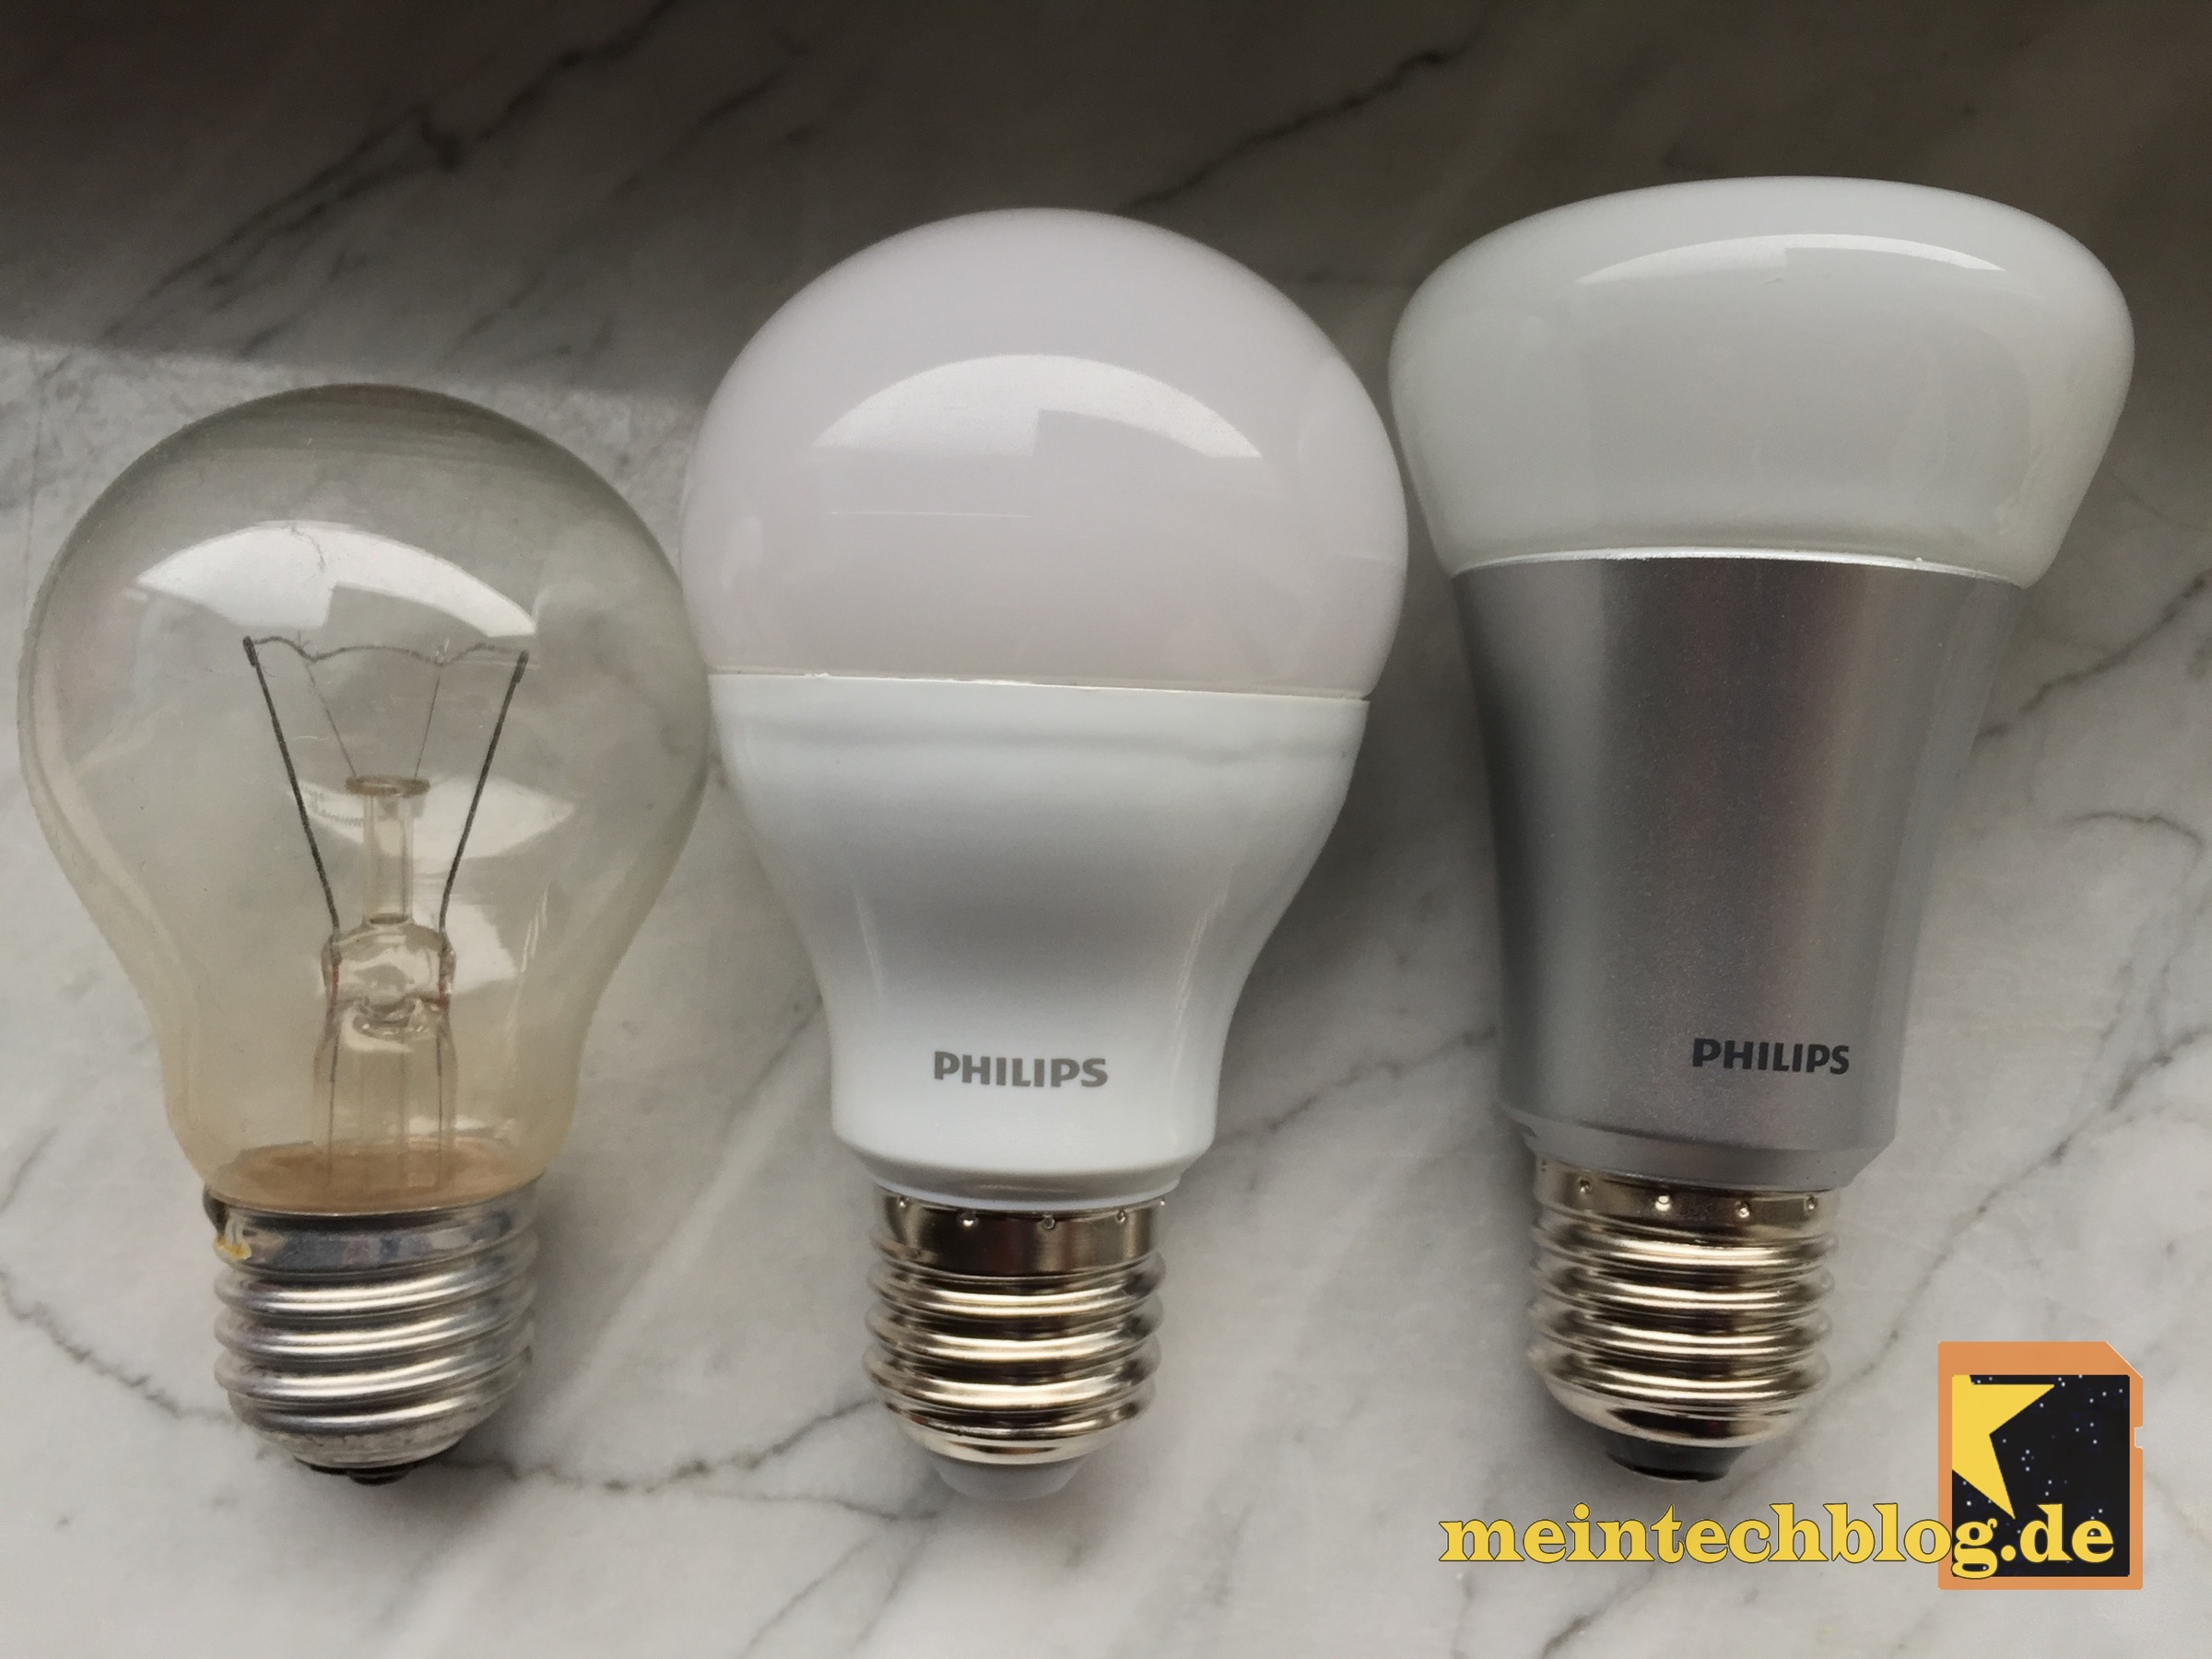 Philips Hue So Klappt Die Integration In Fhem